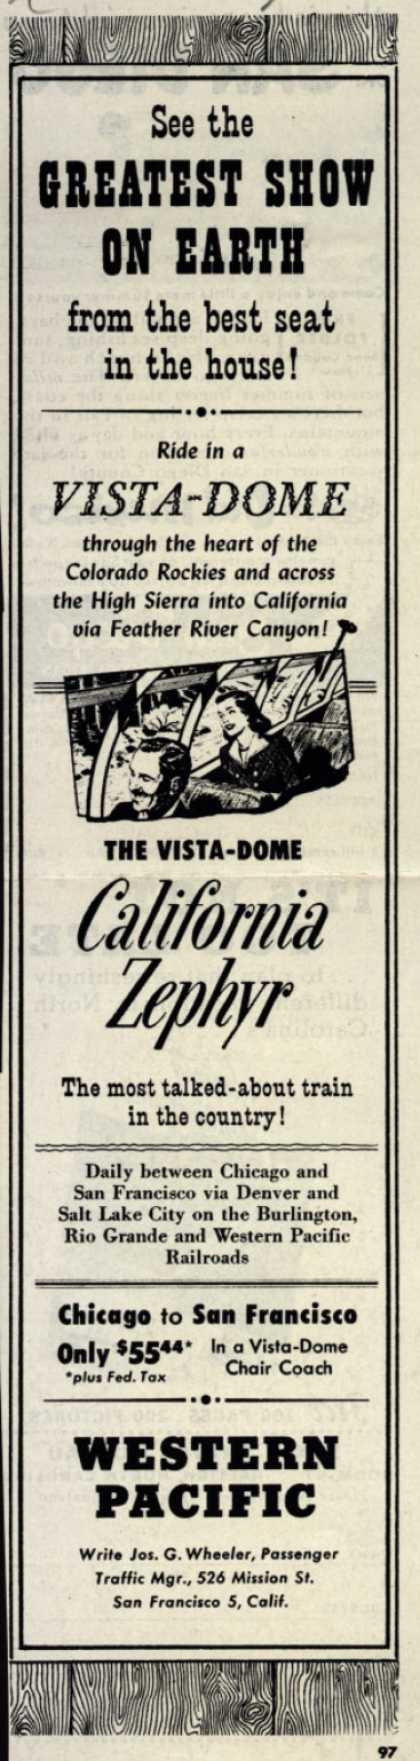 Western Pacific's California Zephyr – See the Greatest Show on Earth from the best seat in the house (1952)